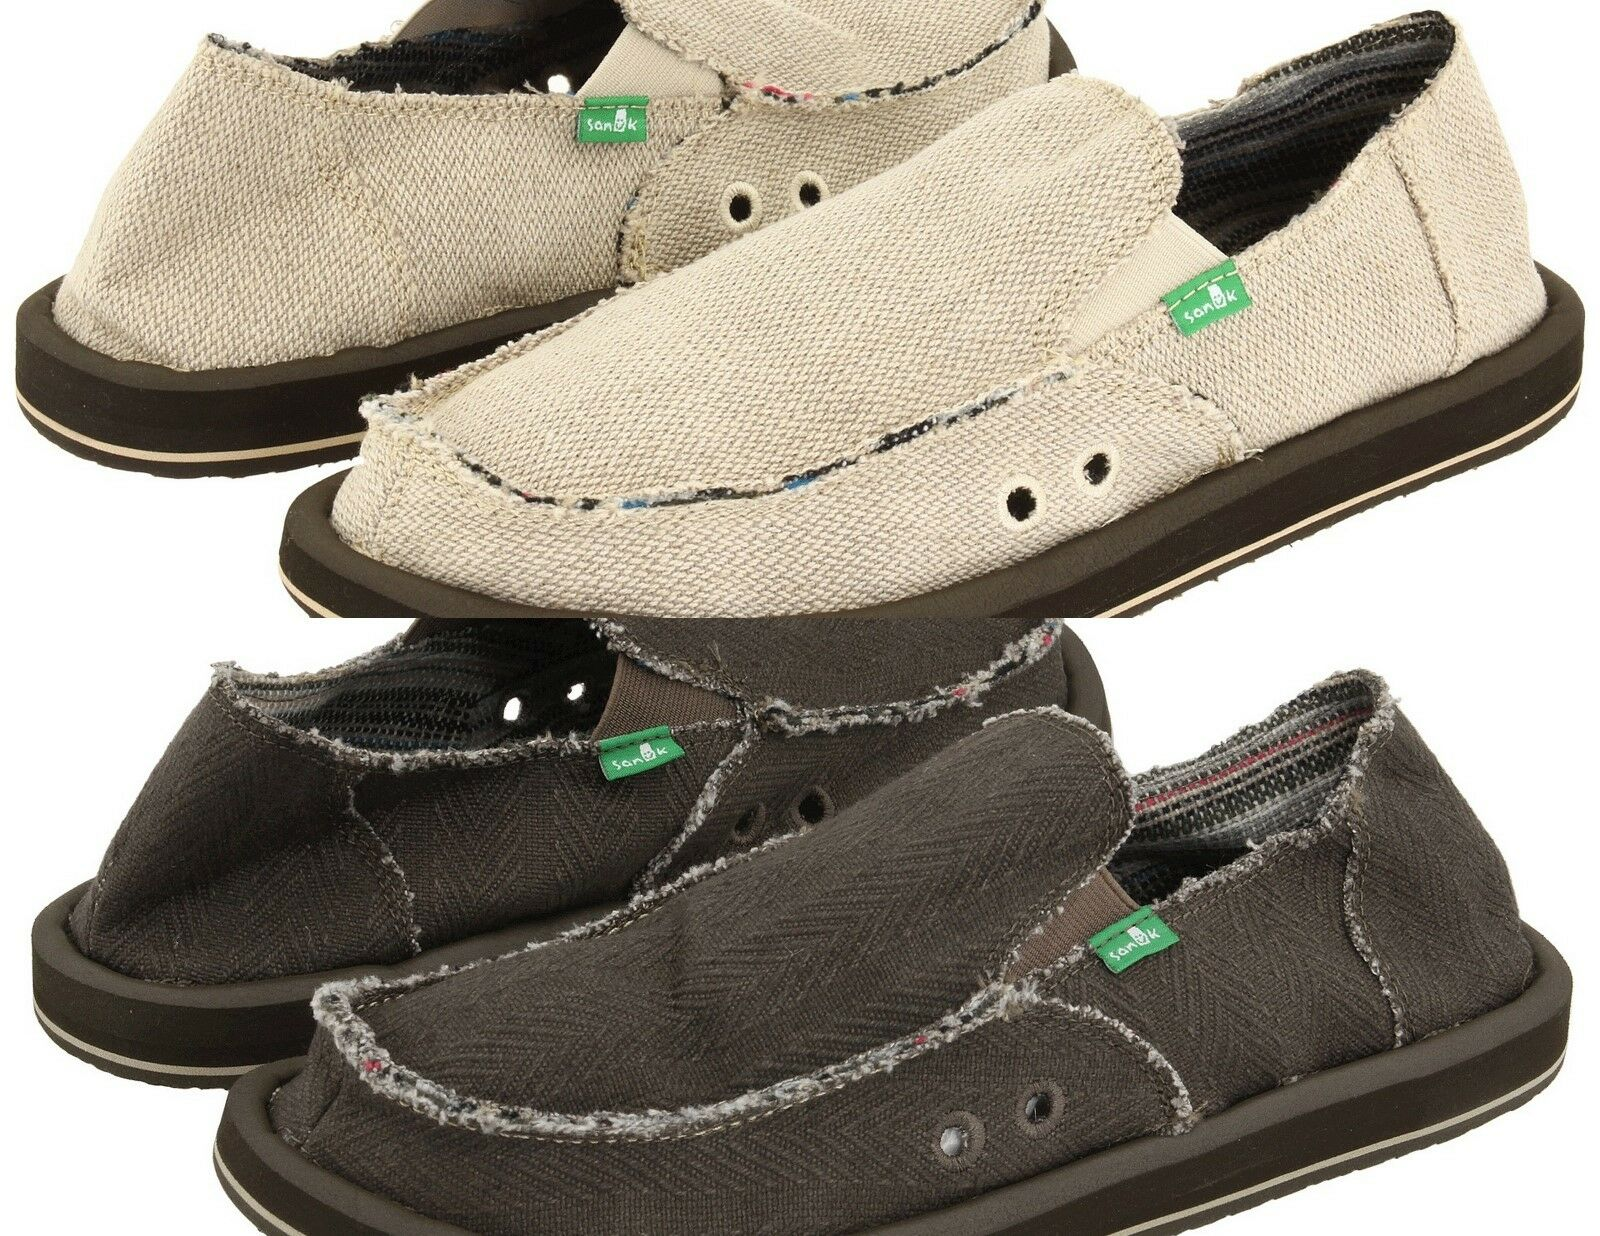 Sanuk Hemp Men's Sidewalk Surfer Slip-on Loafer Medium (D, M)